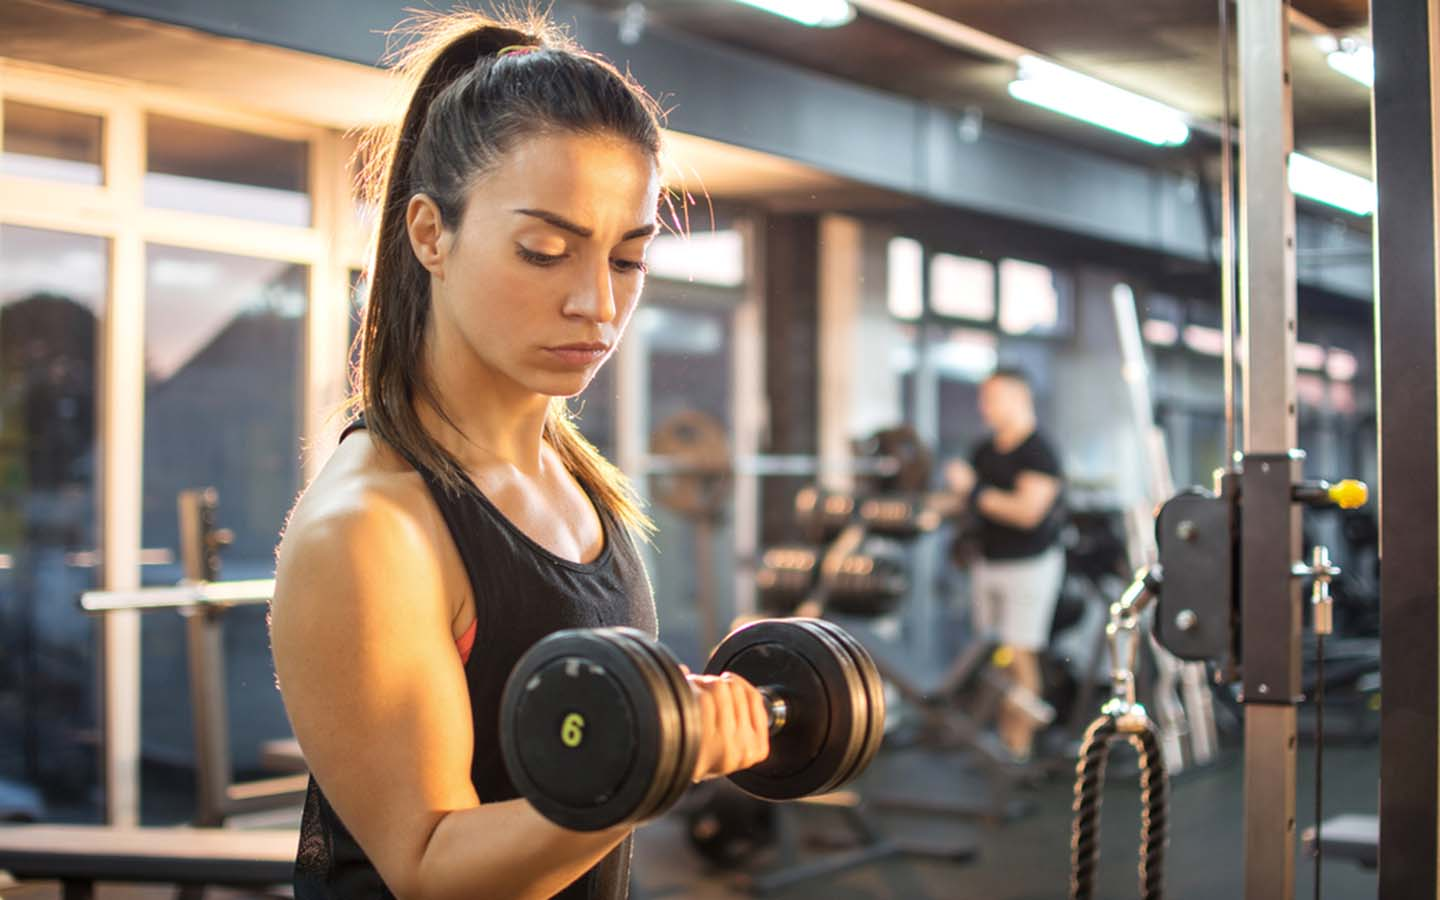 Young woman lifting weights at a gym